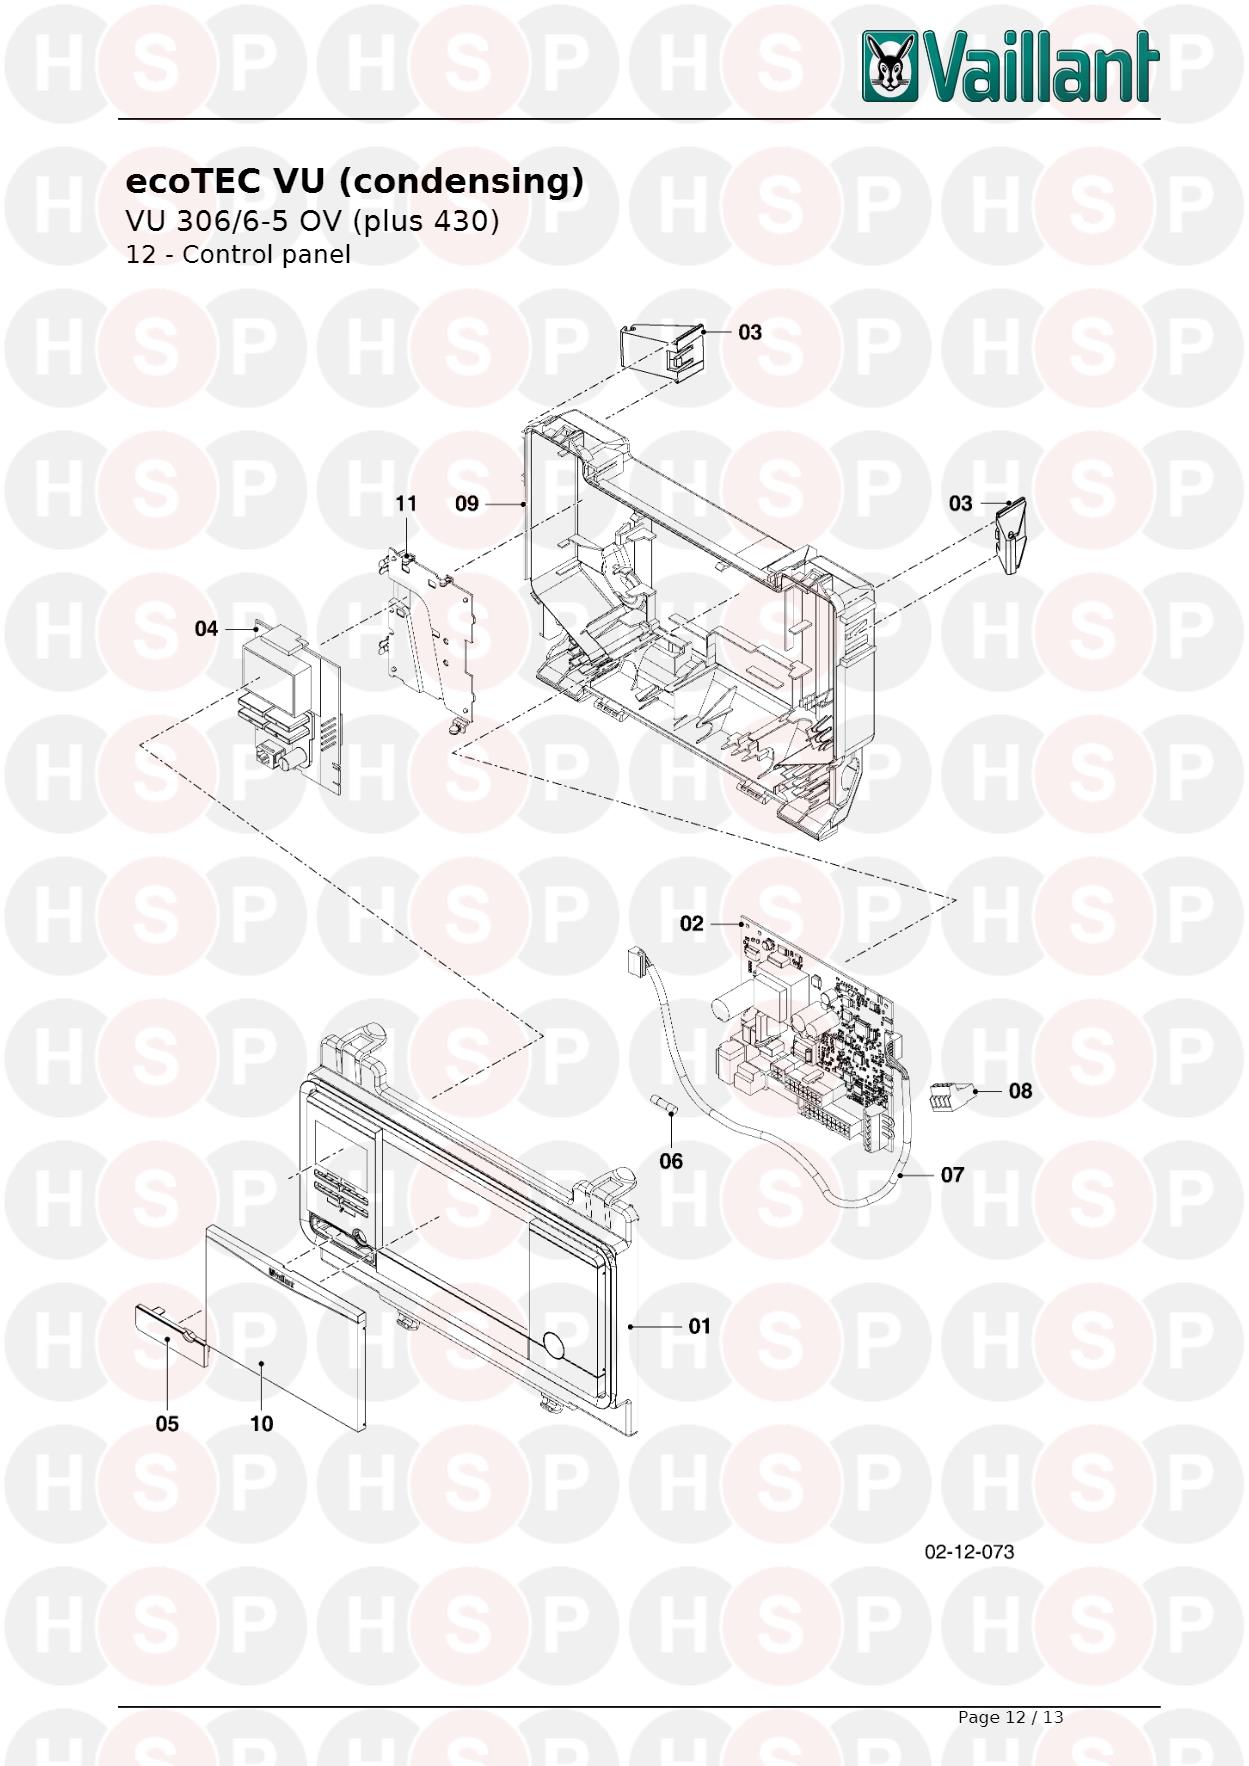 vaillant ecotec plus 430 wiring diagram